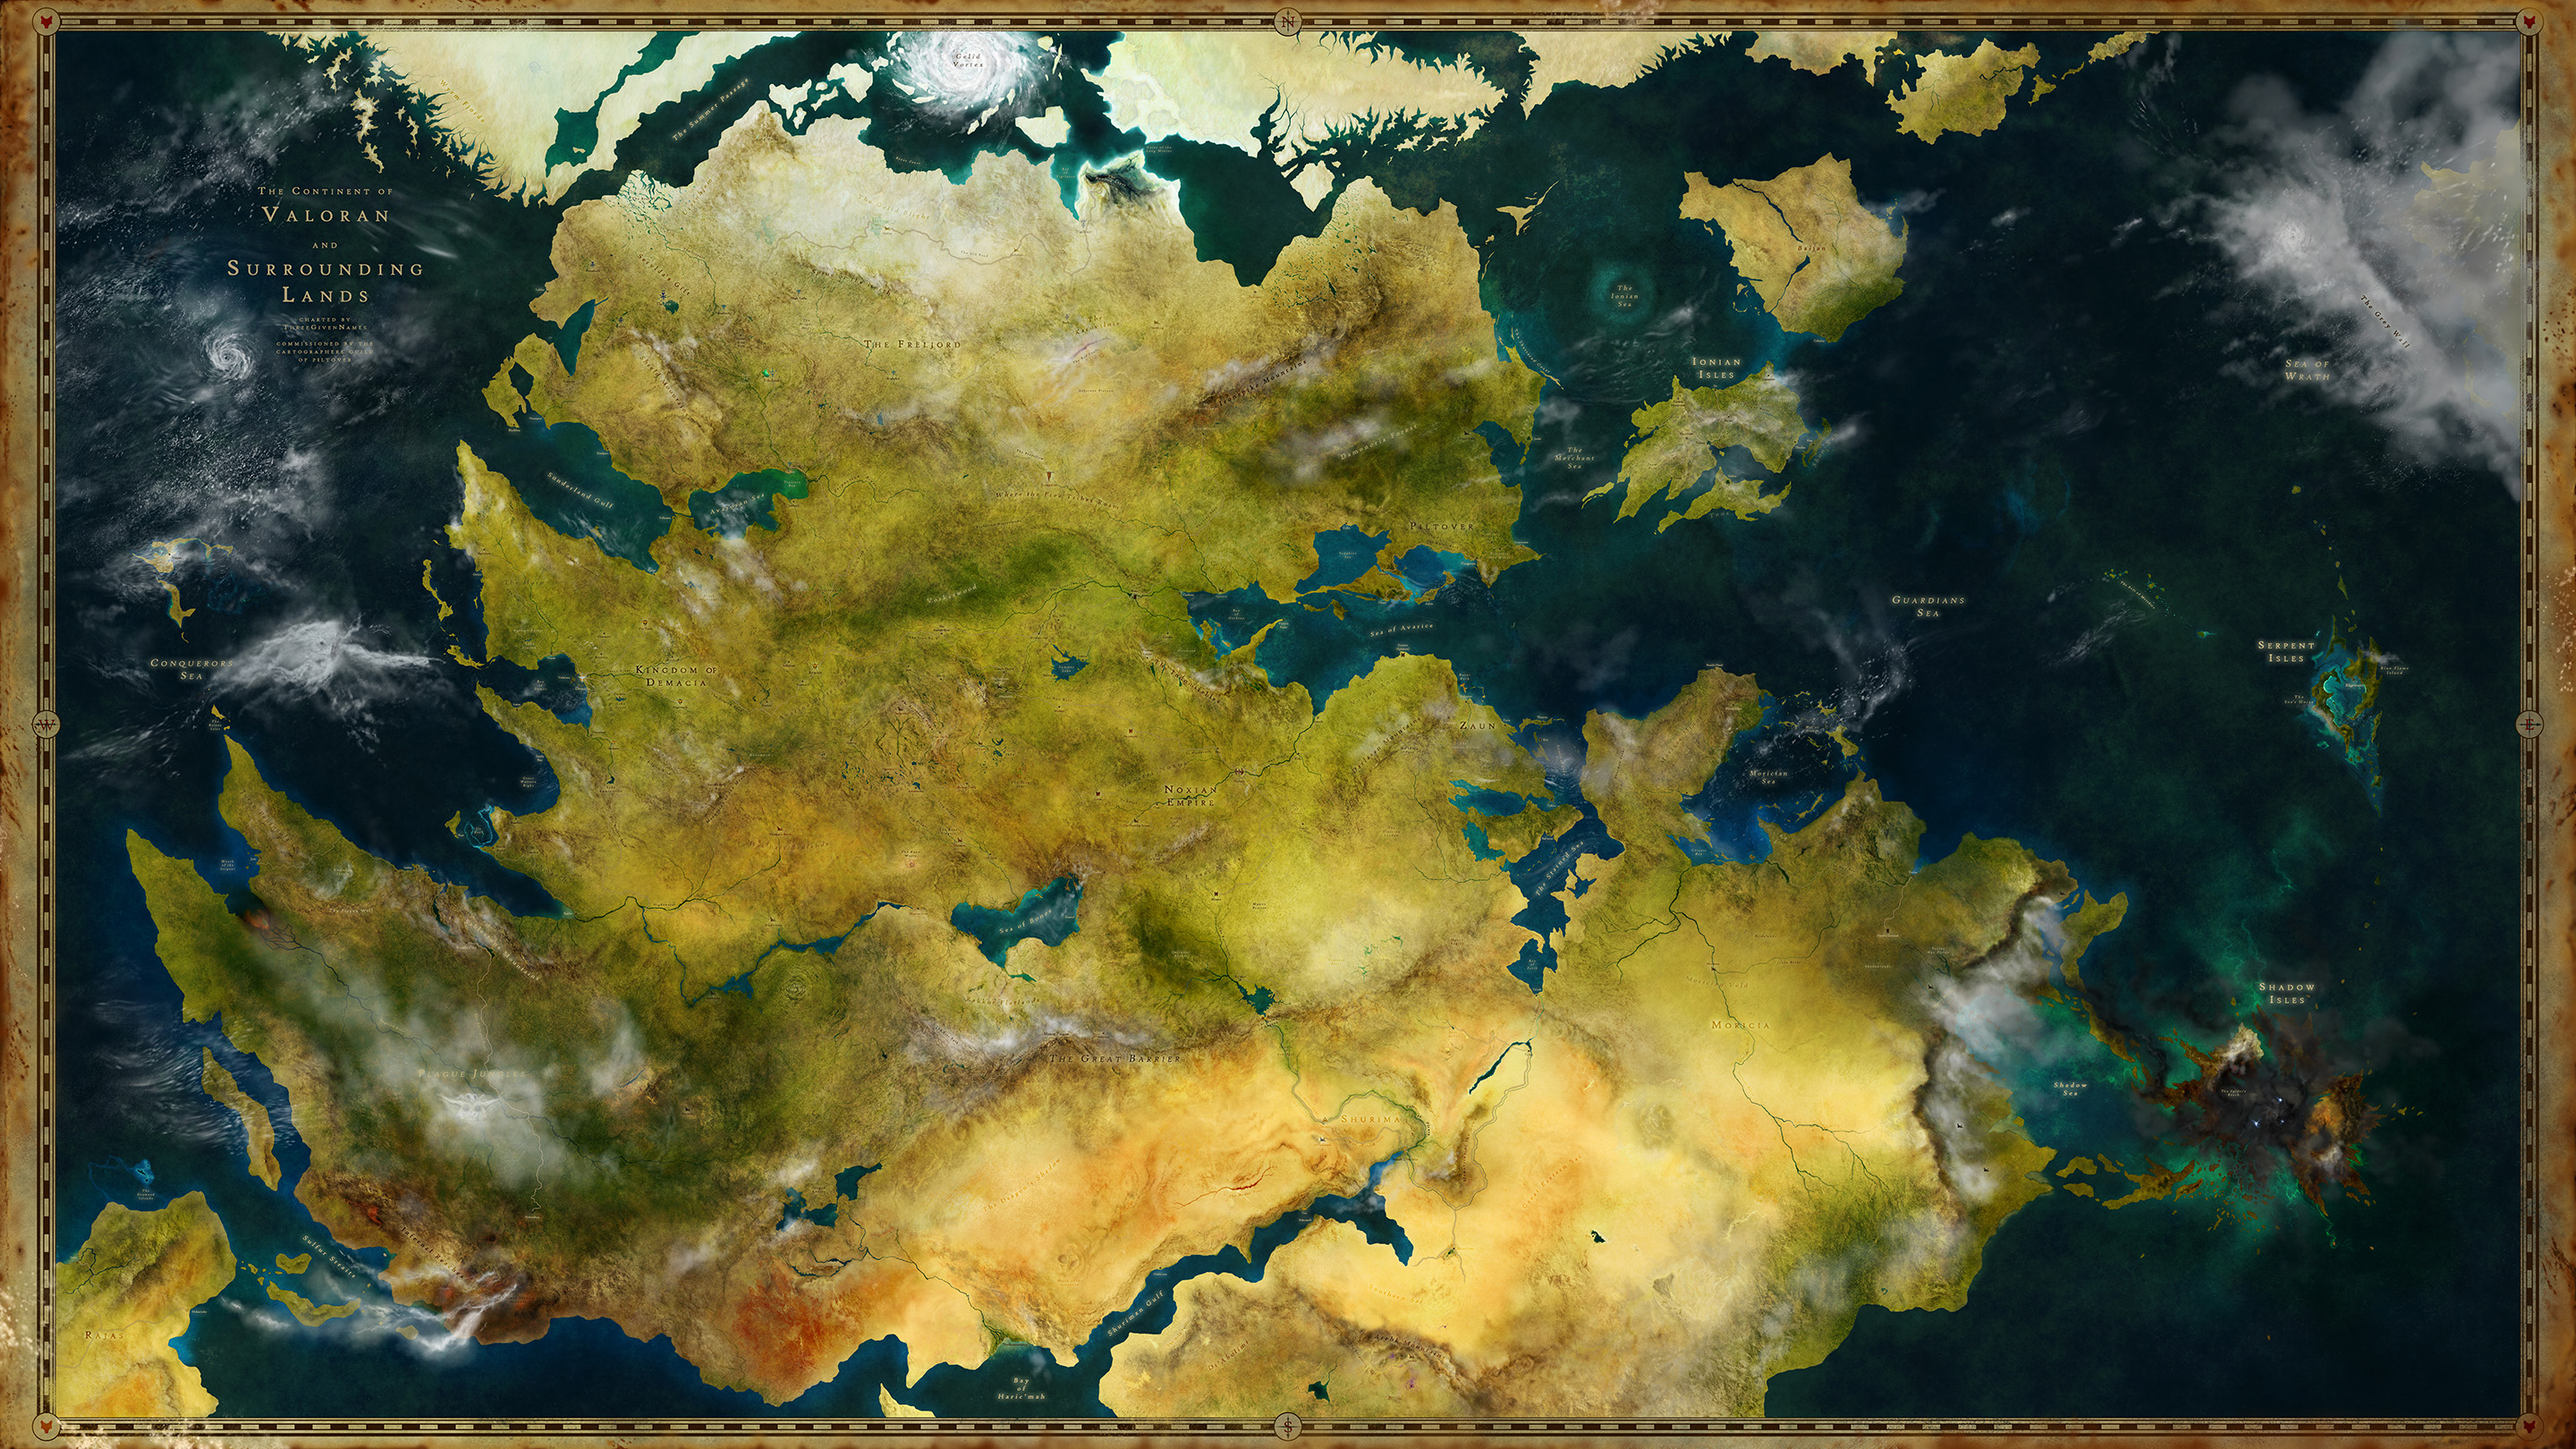 Legacy of the League - A League of Legends Map by ... on diablo 3 world map, pokemon mystery dungeon world map, lol map, concept art world map, treasure map,